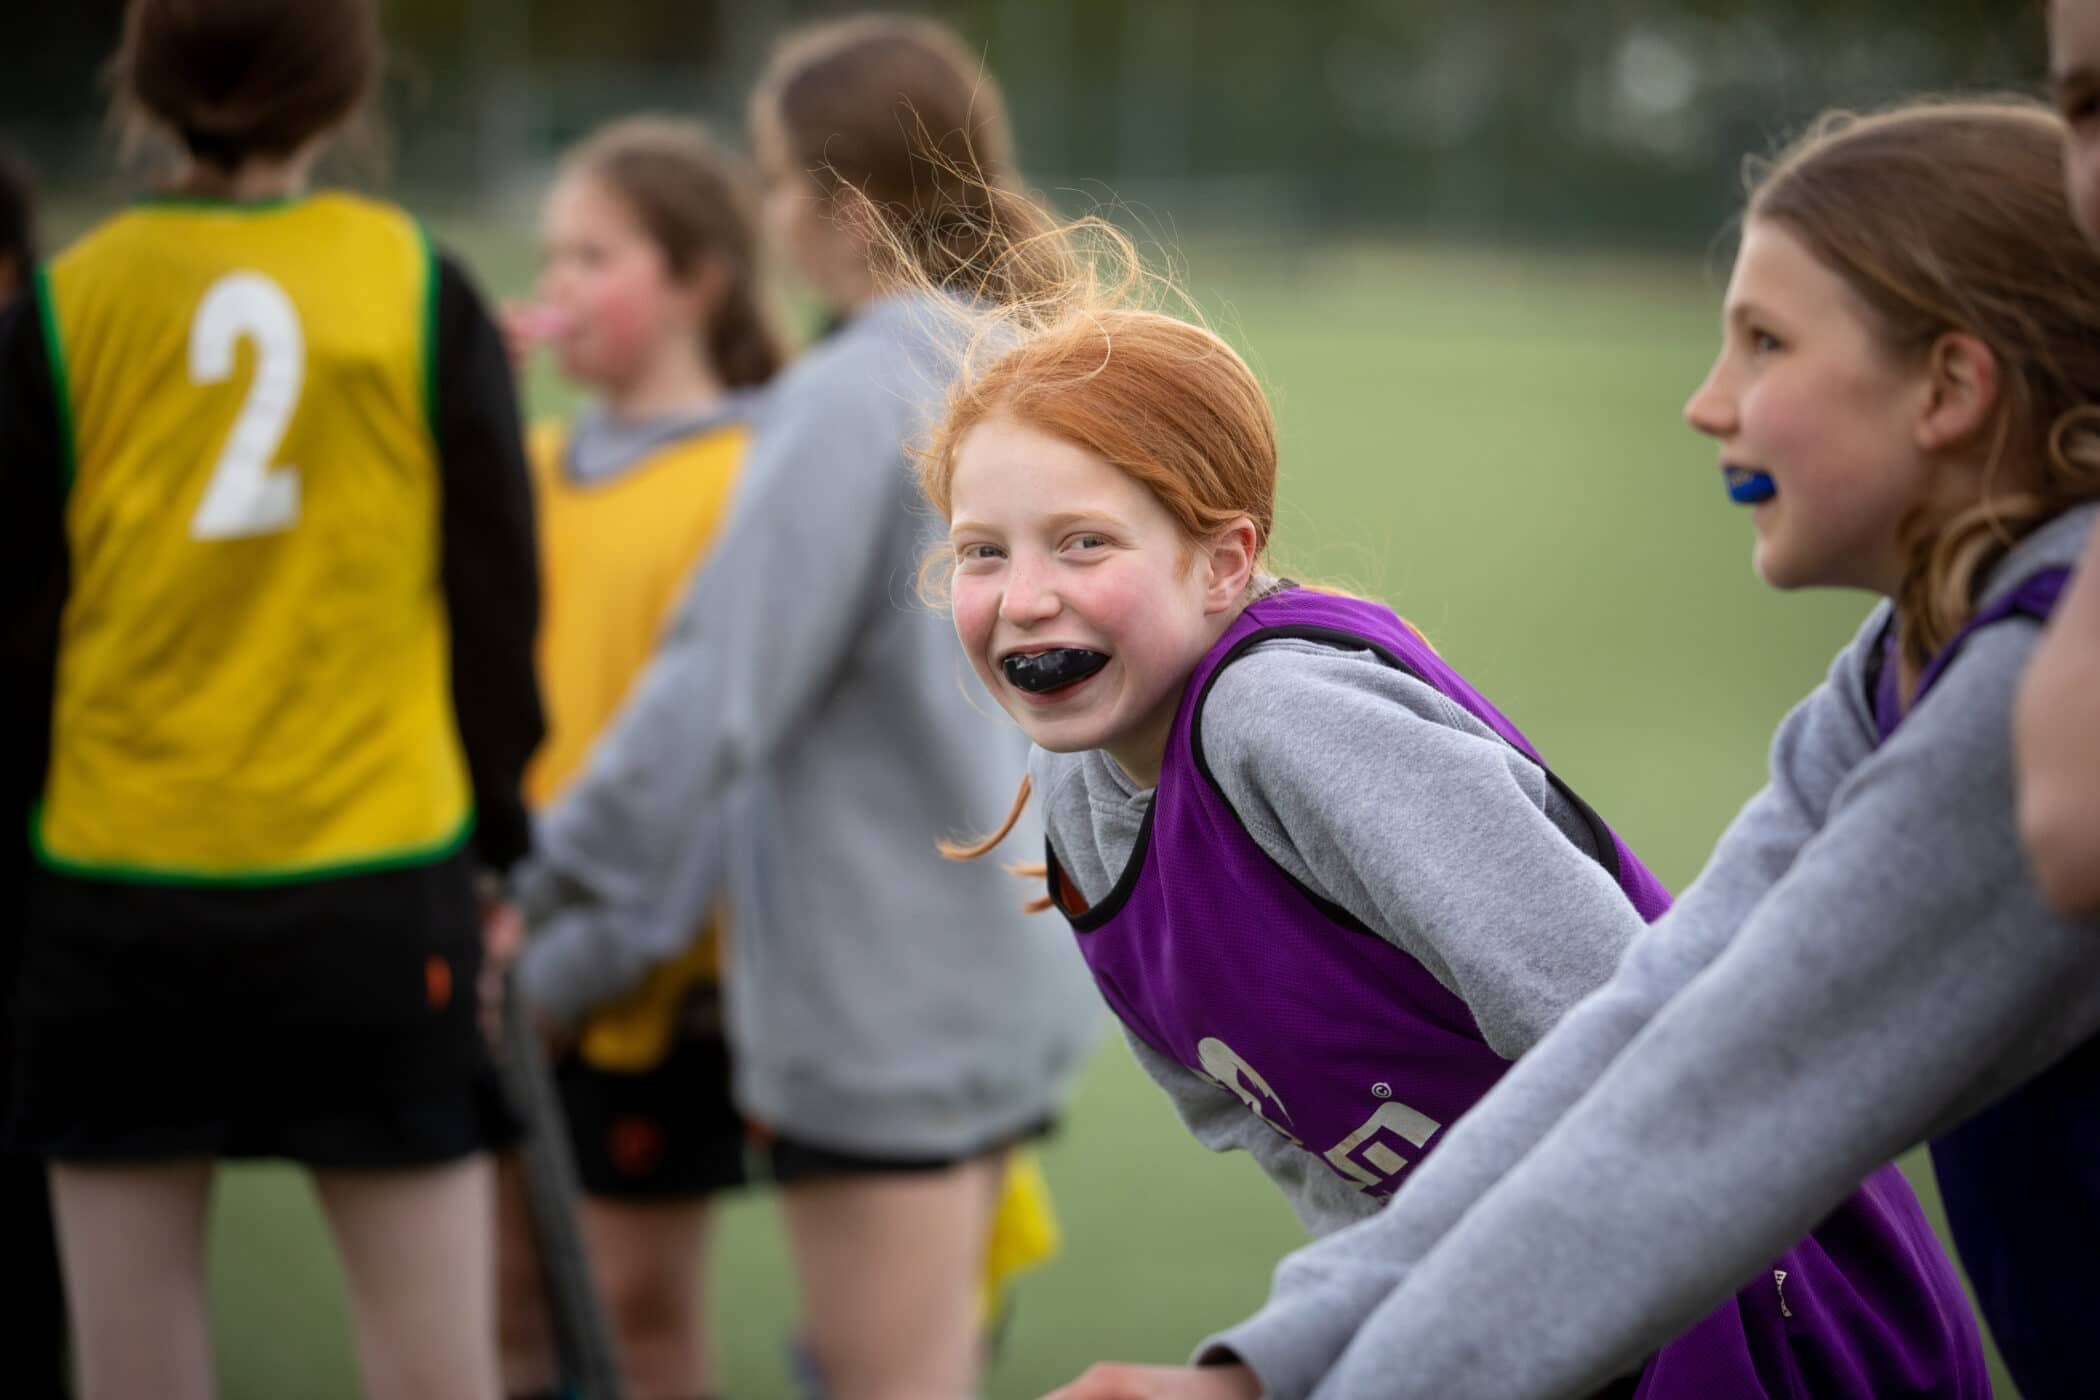 Smiling child with gumshield playing hockey